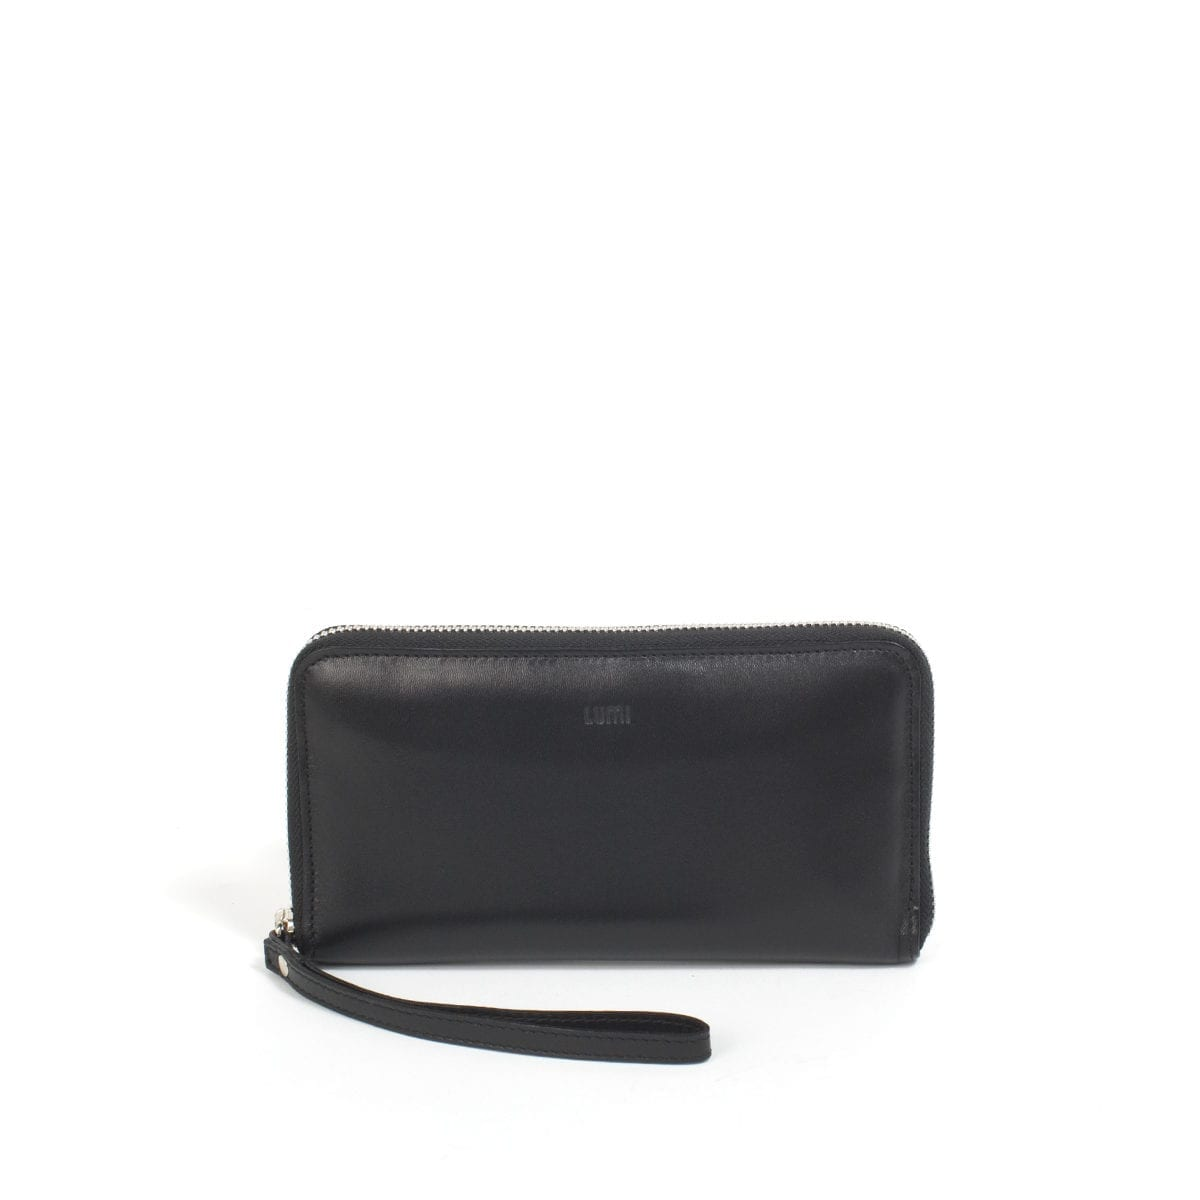 LUMI Orvokki Large Wallet, in black.